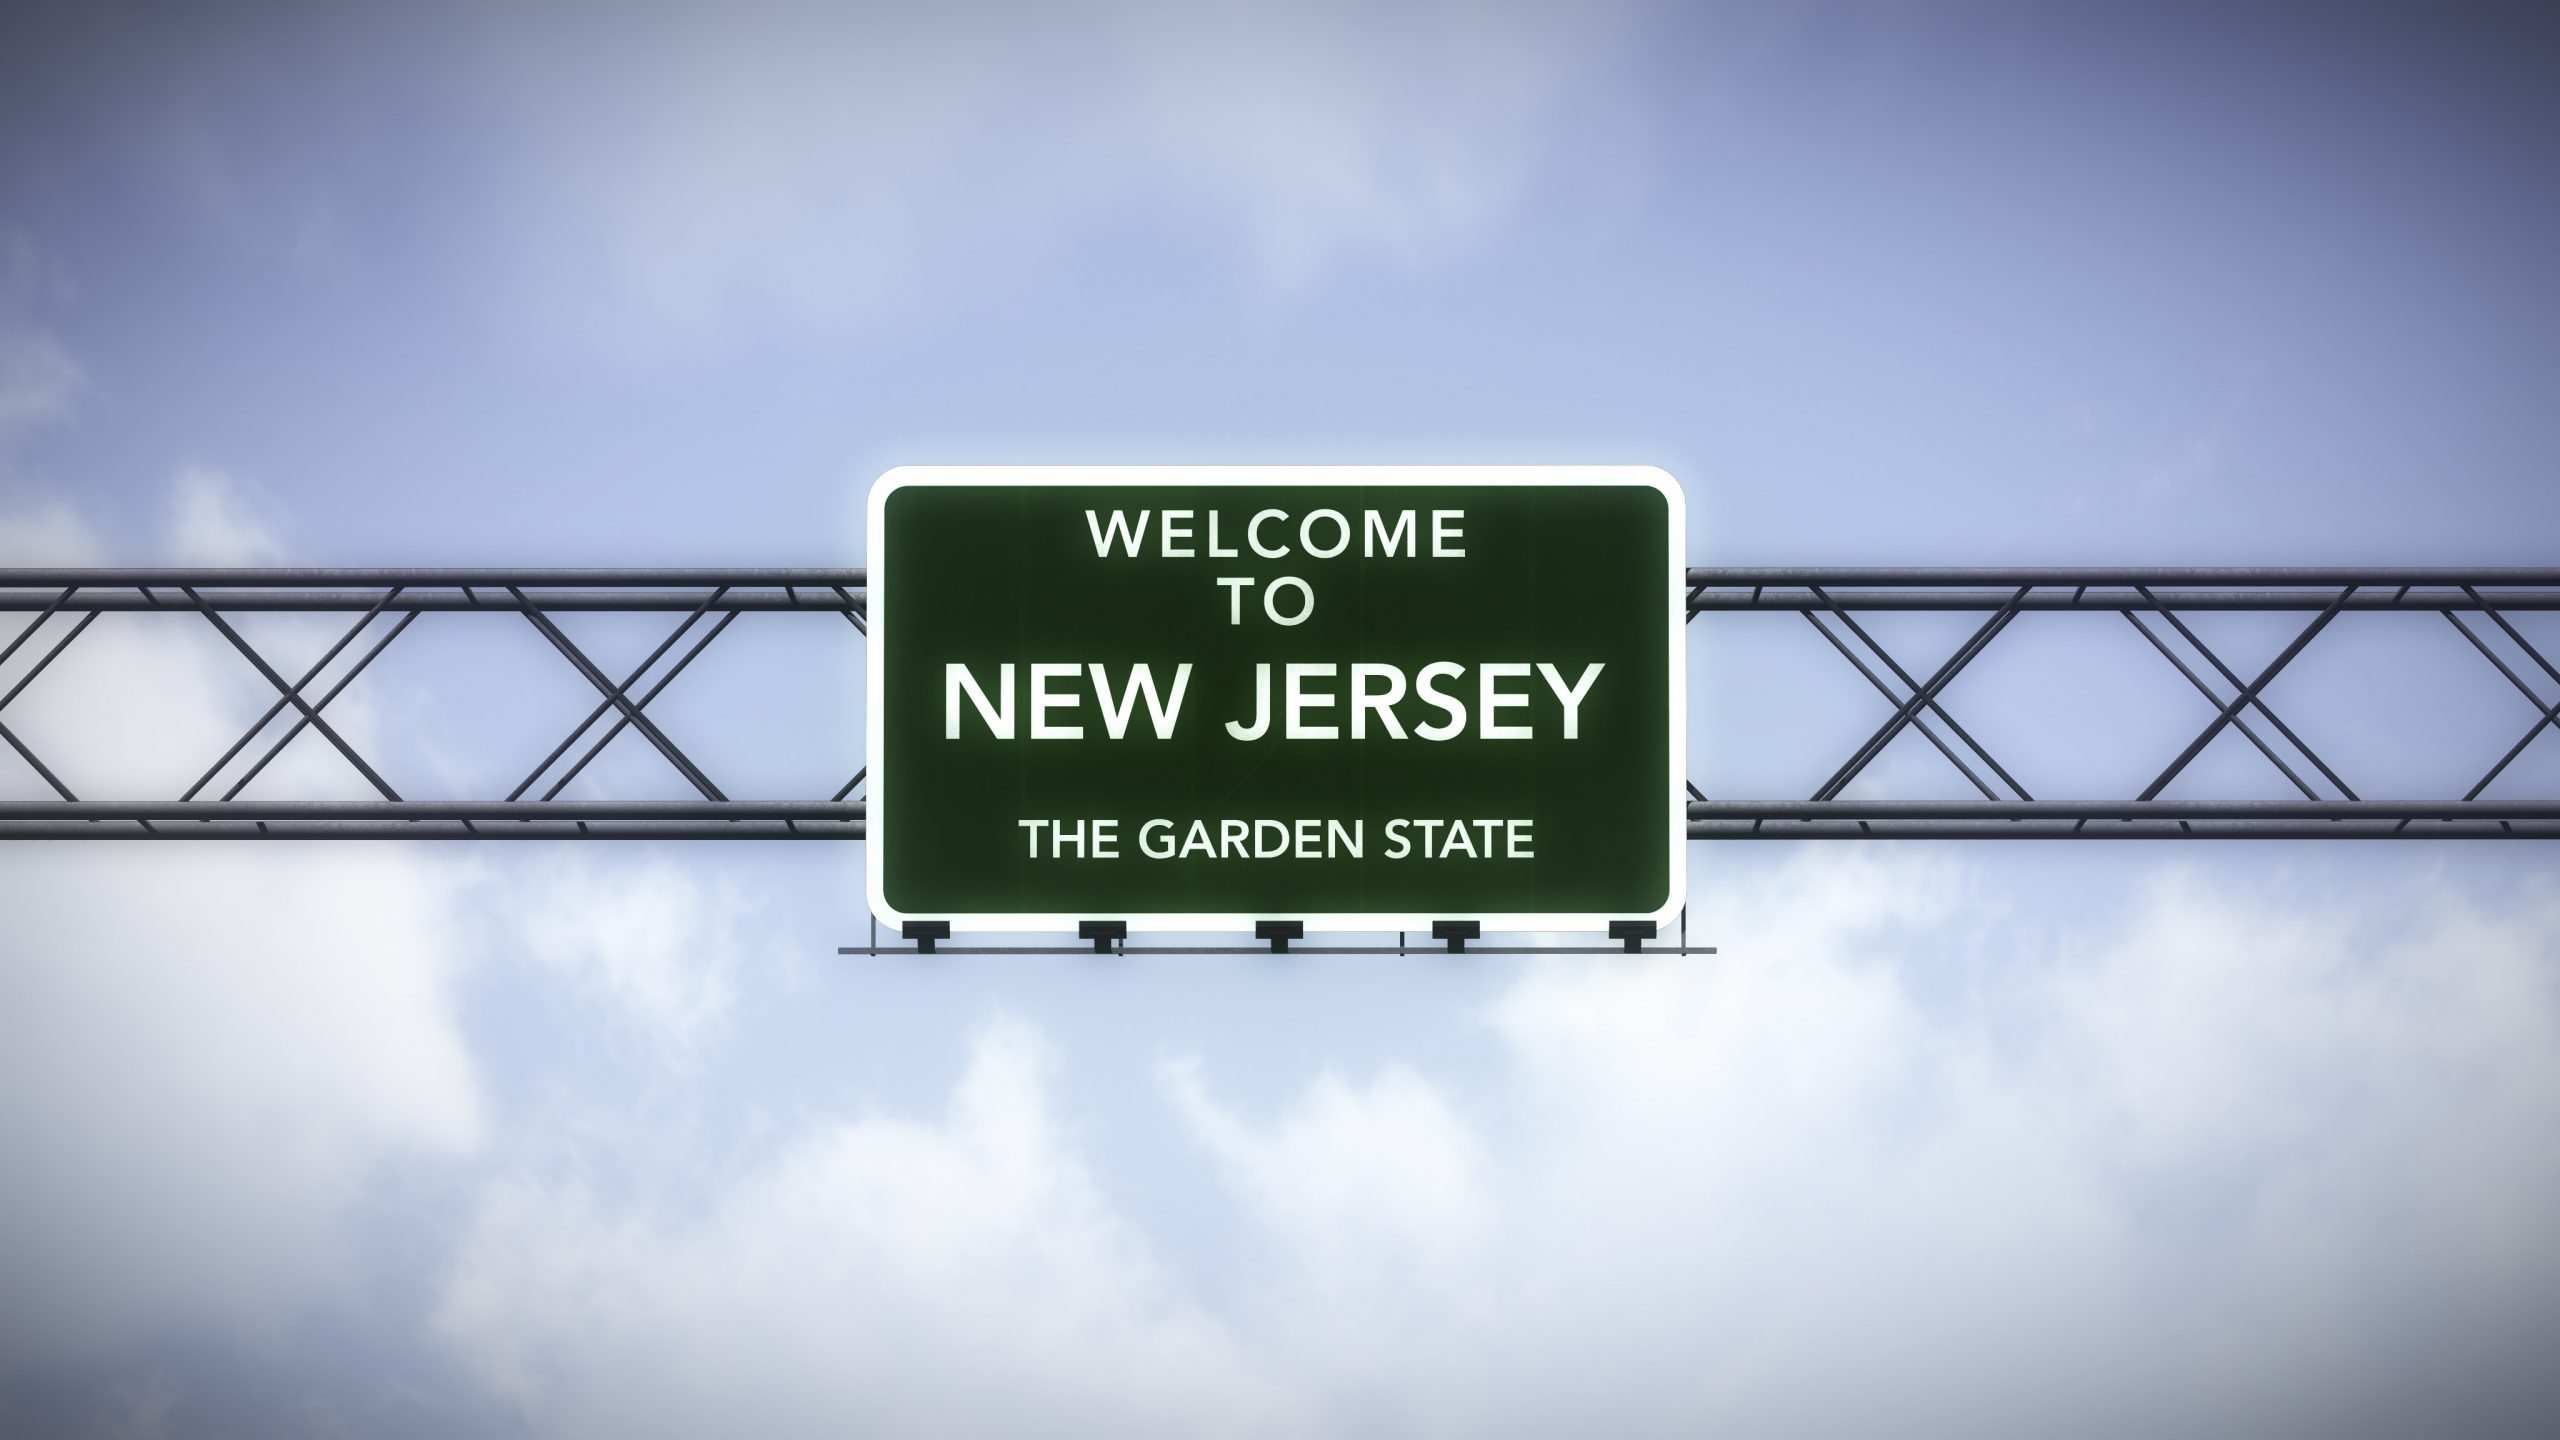 Welcome to New Jersey road sign with blue sky background